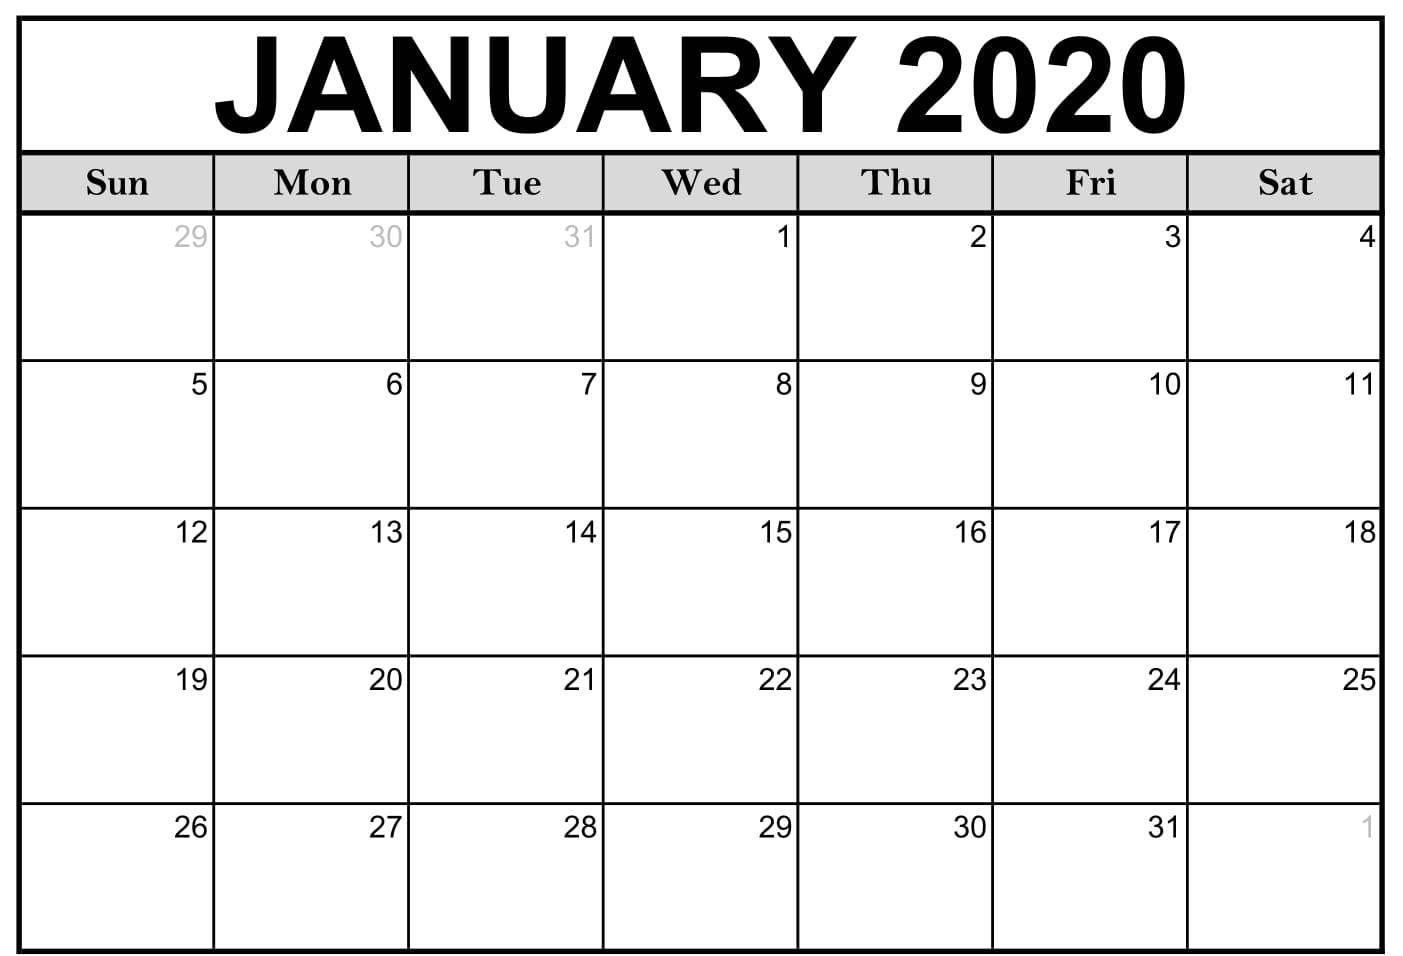 January 2020 Calendar Printable.January 2020 Calendar Template Free Printable Calendar